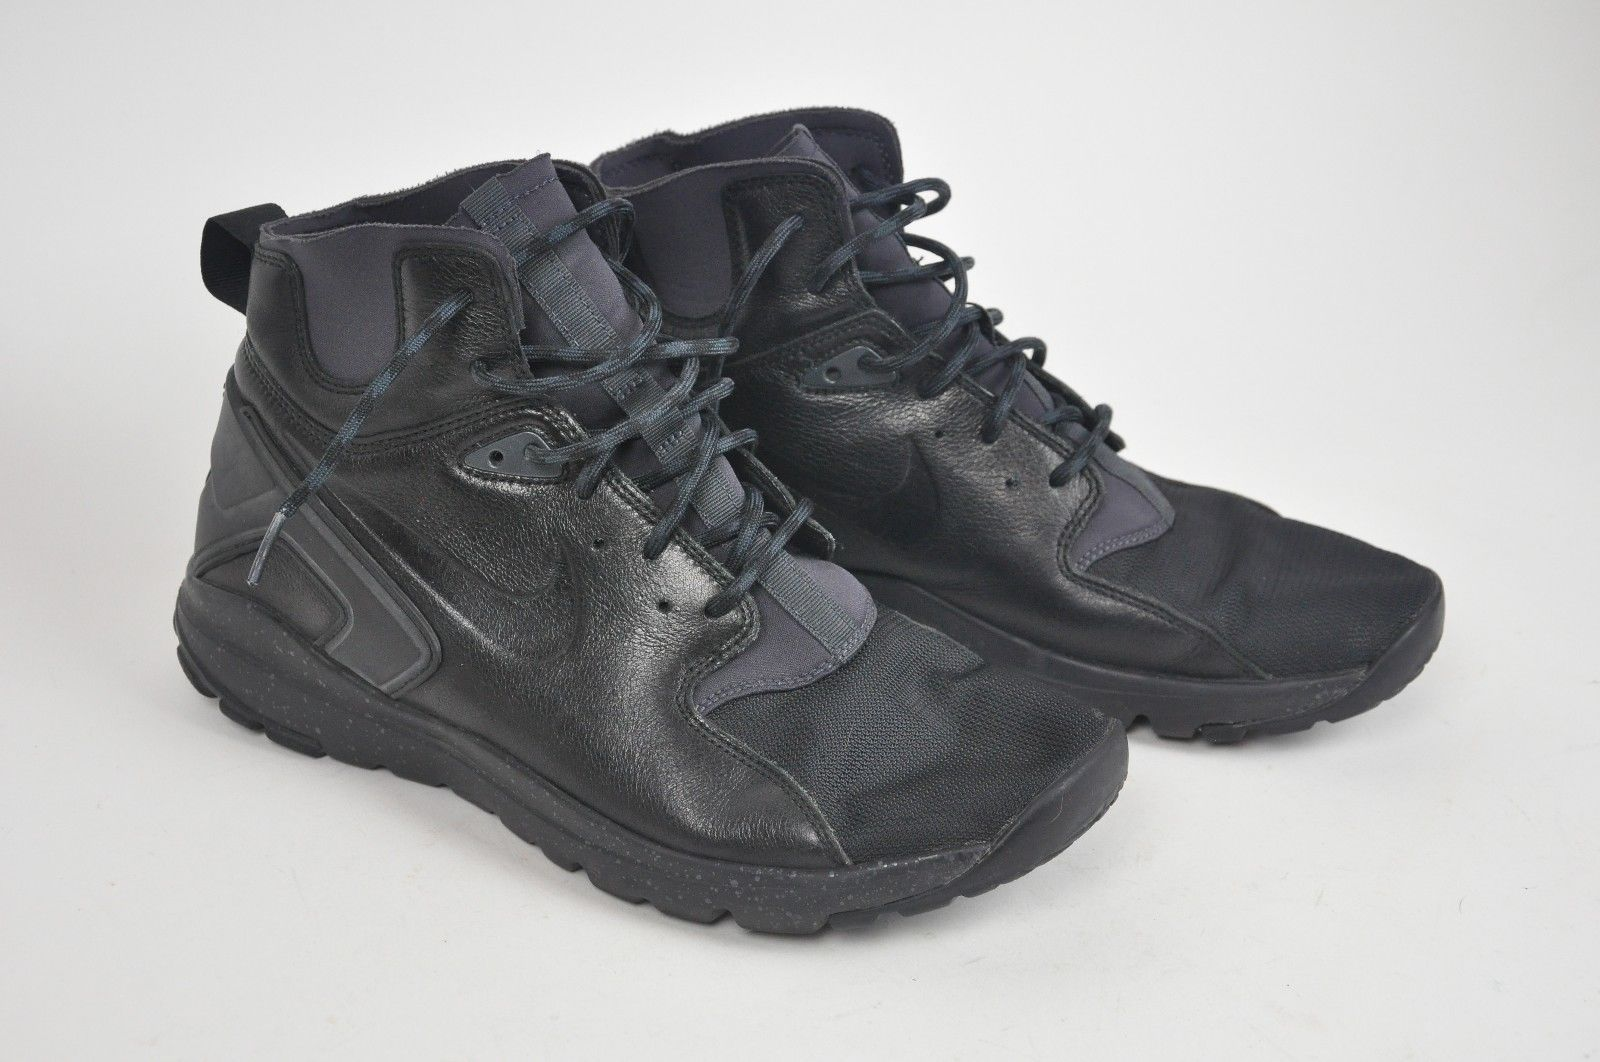 Men's NIKE Koth Ultra Mid Solid Black Boot Shoes 2014 Trainers Sneaker Size 10.5